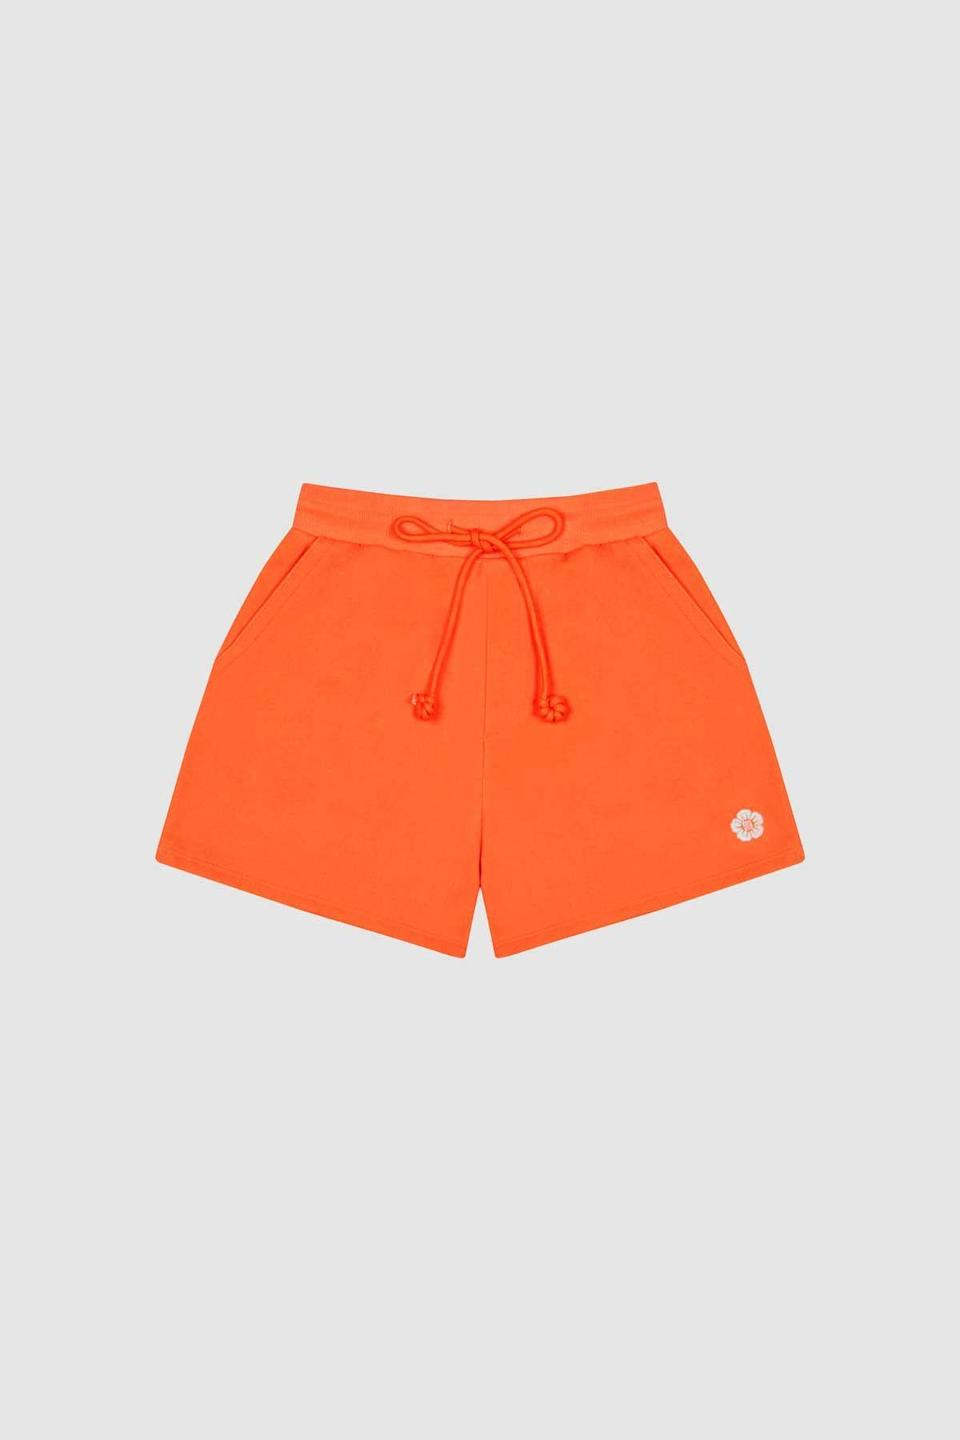 """<p><strong>sundae.school</strong></p><p>sundae.school</p><p><strong>$70.00</strong></p><p><a href=""""https://sundae.school/collections/bottoms/products/hallabong-womens-sweat-shorts"""" rel=""""nofollow noopener"""" target=""""_blank"""" data-ylk=""""slk:Shop Now"""" class=""""link rapid-noclick-resp"""">Shop Now</a></p><p>This entire brand just epitomizes the word <em>cool</em>. Founded by siblings Dae and Cindy Lim, they offer amazing celeb-loved hoodies, sweats, and all things cozy. Since it's summer, you might not want to hang around in full sweats—and that's why these sweat shorts are perfect. They have a cute embroidered flower, they have a precious coiled drawstring. All-around adorable.</p>"""